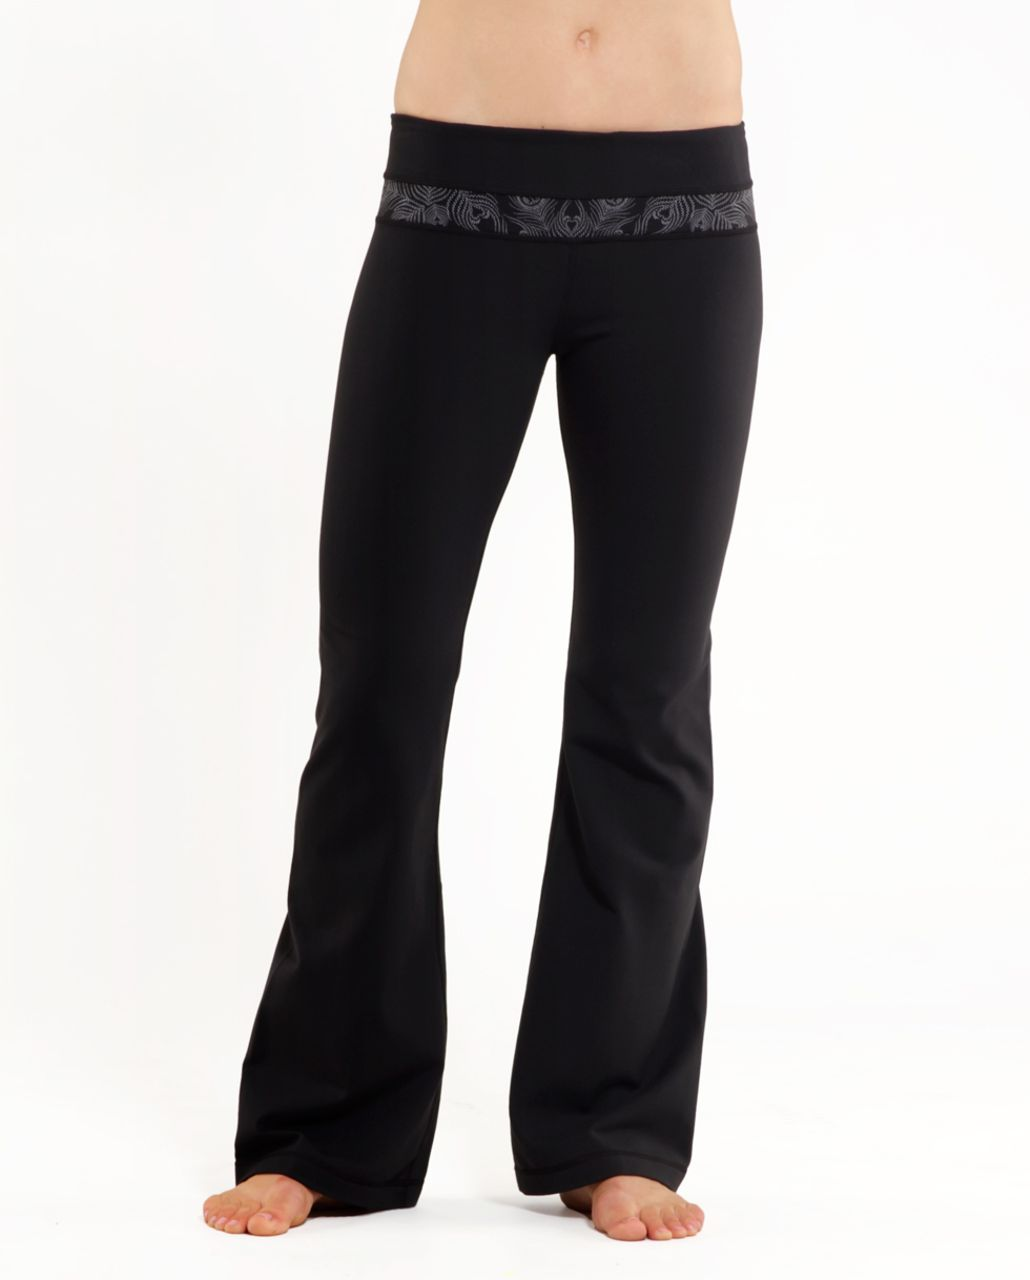 Lululemon Groove Pant (Regular) - Black /  Silver Peacock Lace Reflective /  Black Space Dye